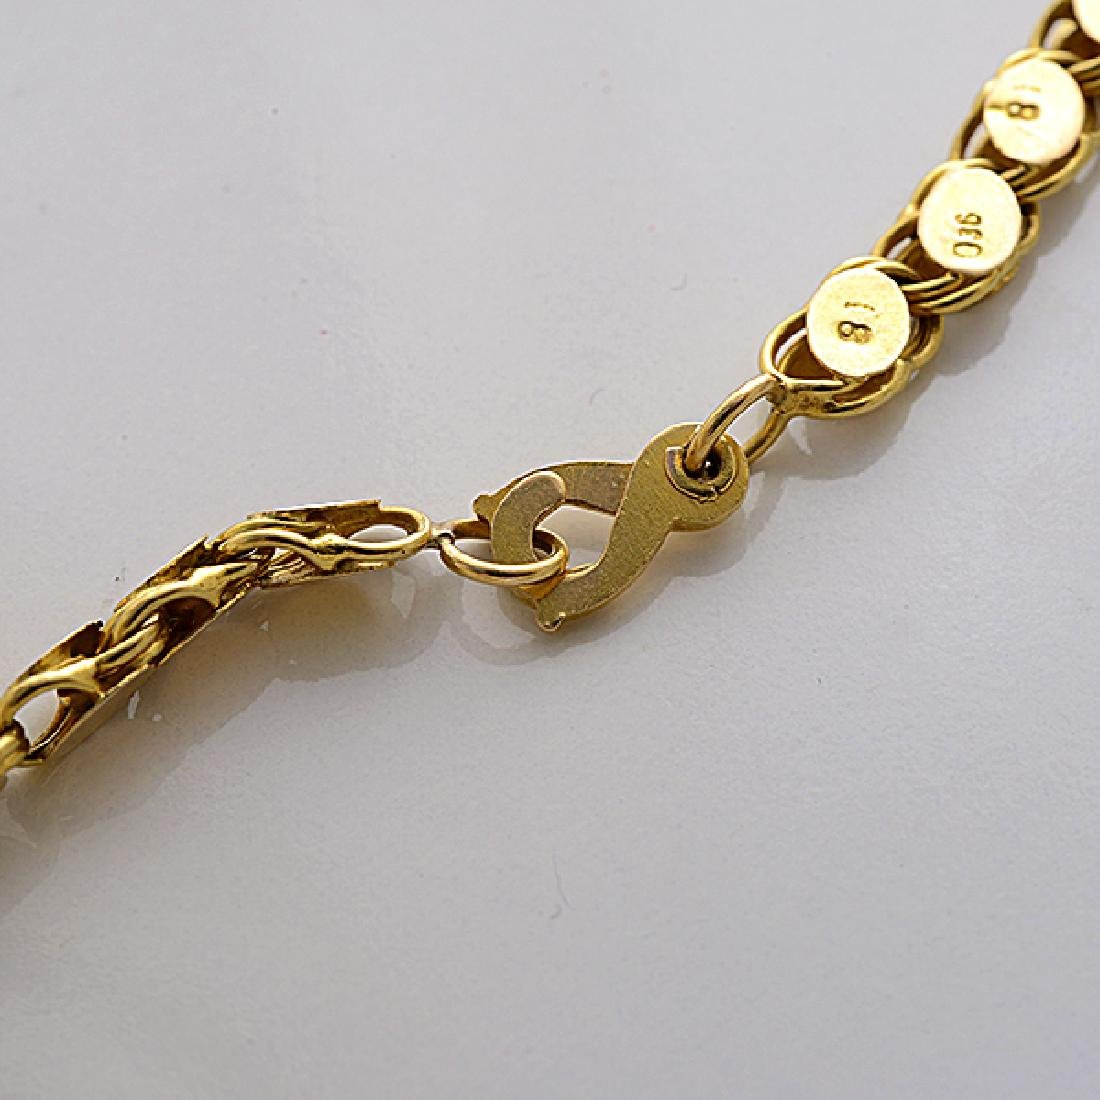 18k Yellow Gold Long Chain Necklace. - 5